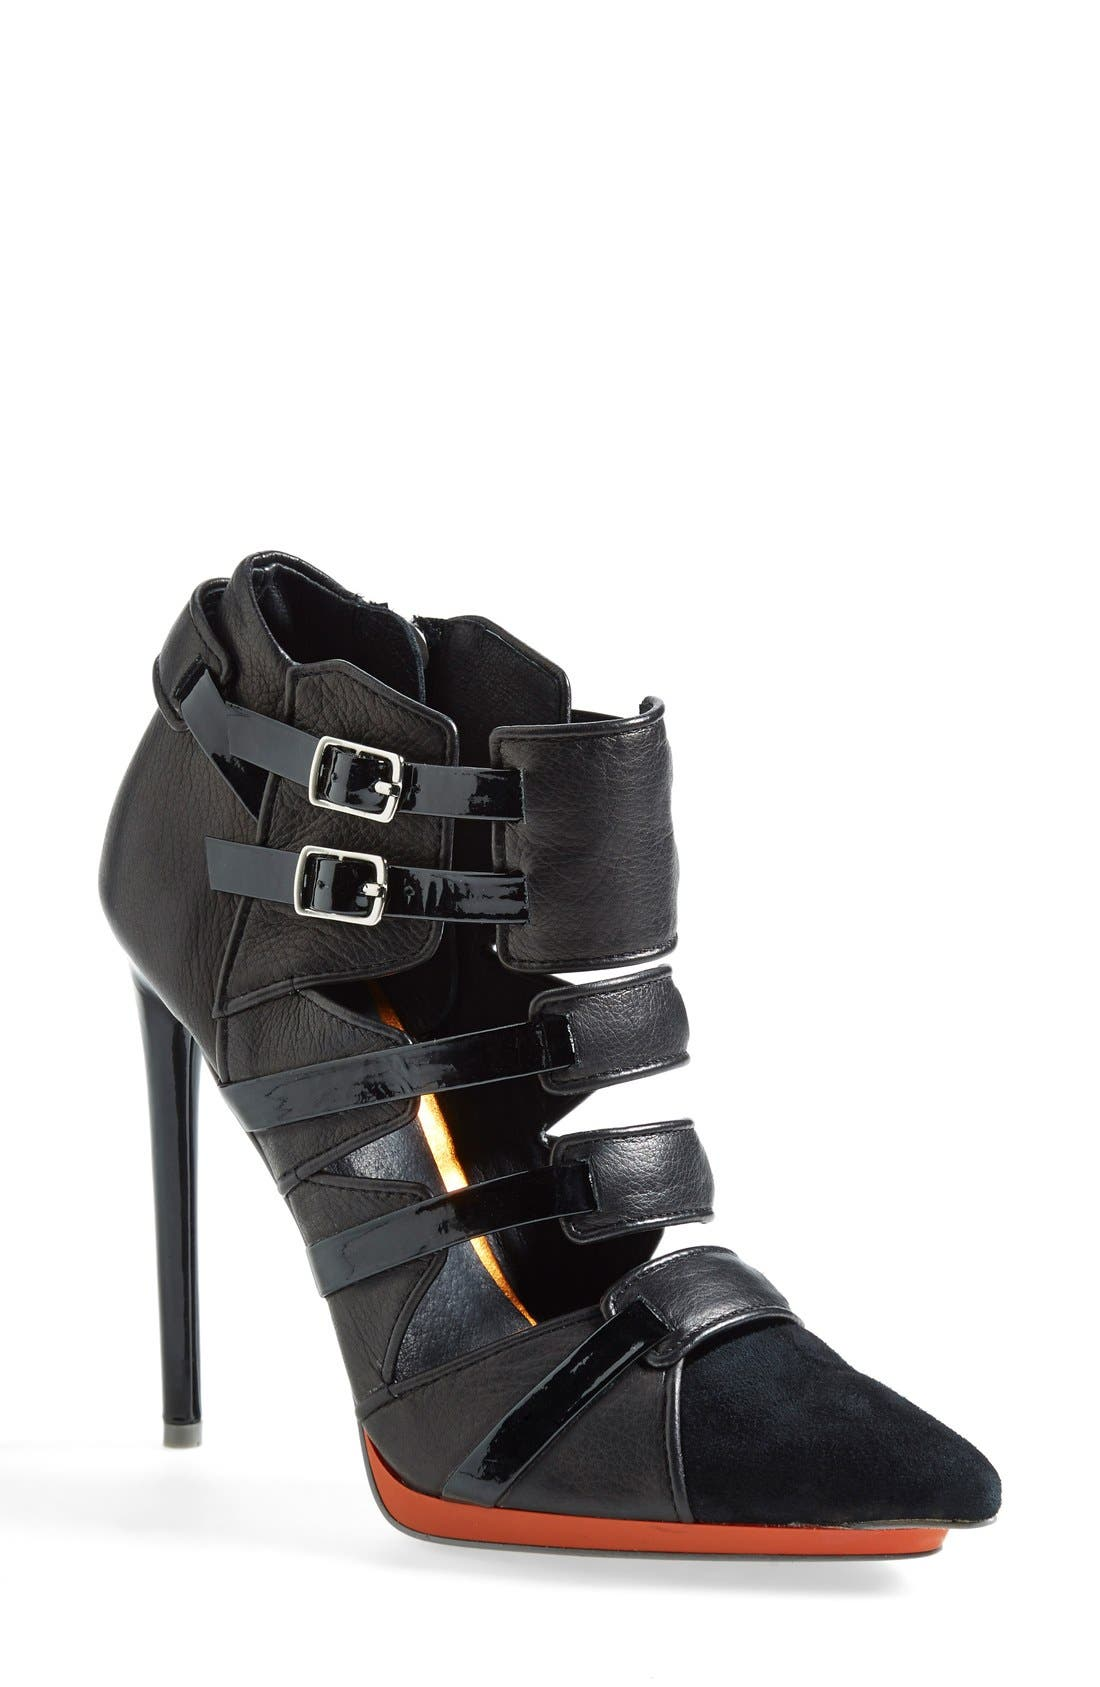 Alternate Image 1 Selected - L.A.M.B. 'Kaine' Cage Bootie (Women)